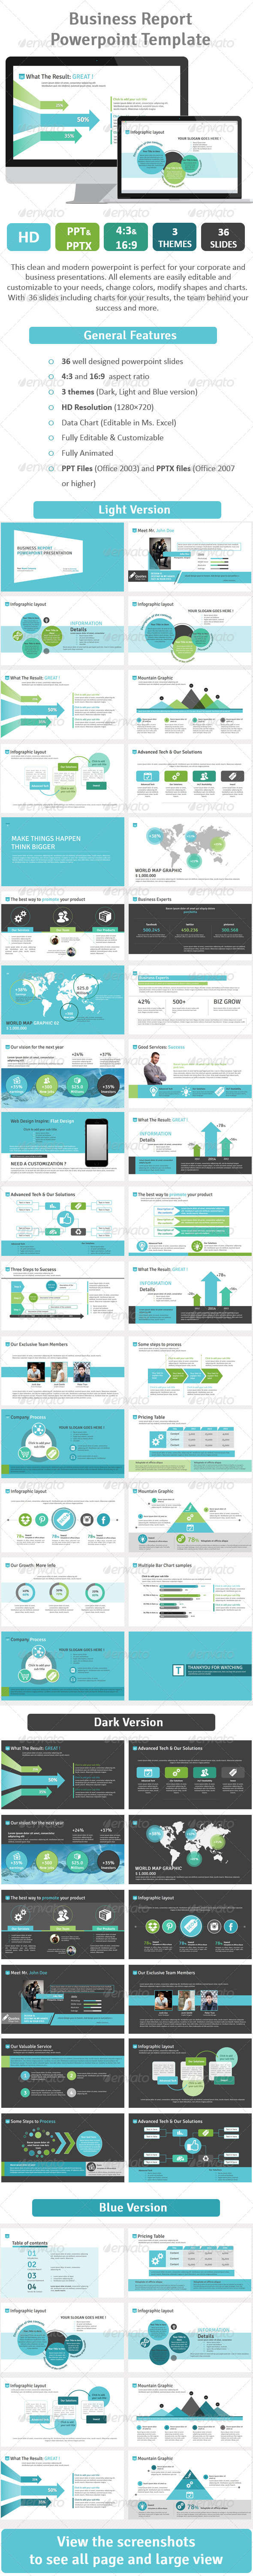 GraphicRiver Business Report Powerpoint Template Vol.2 7250072